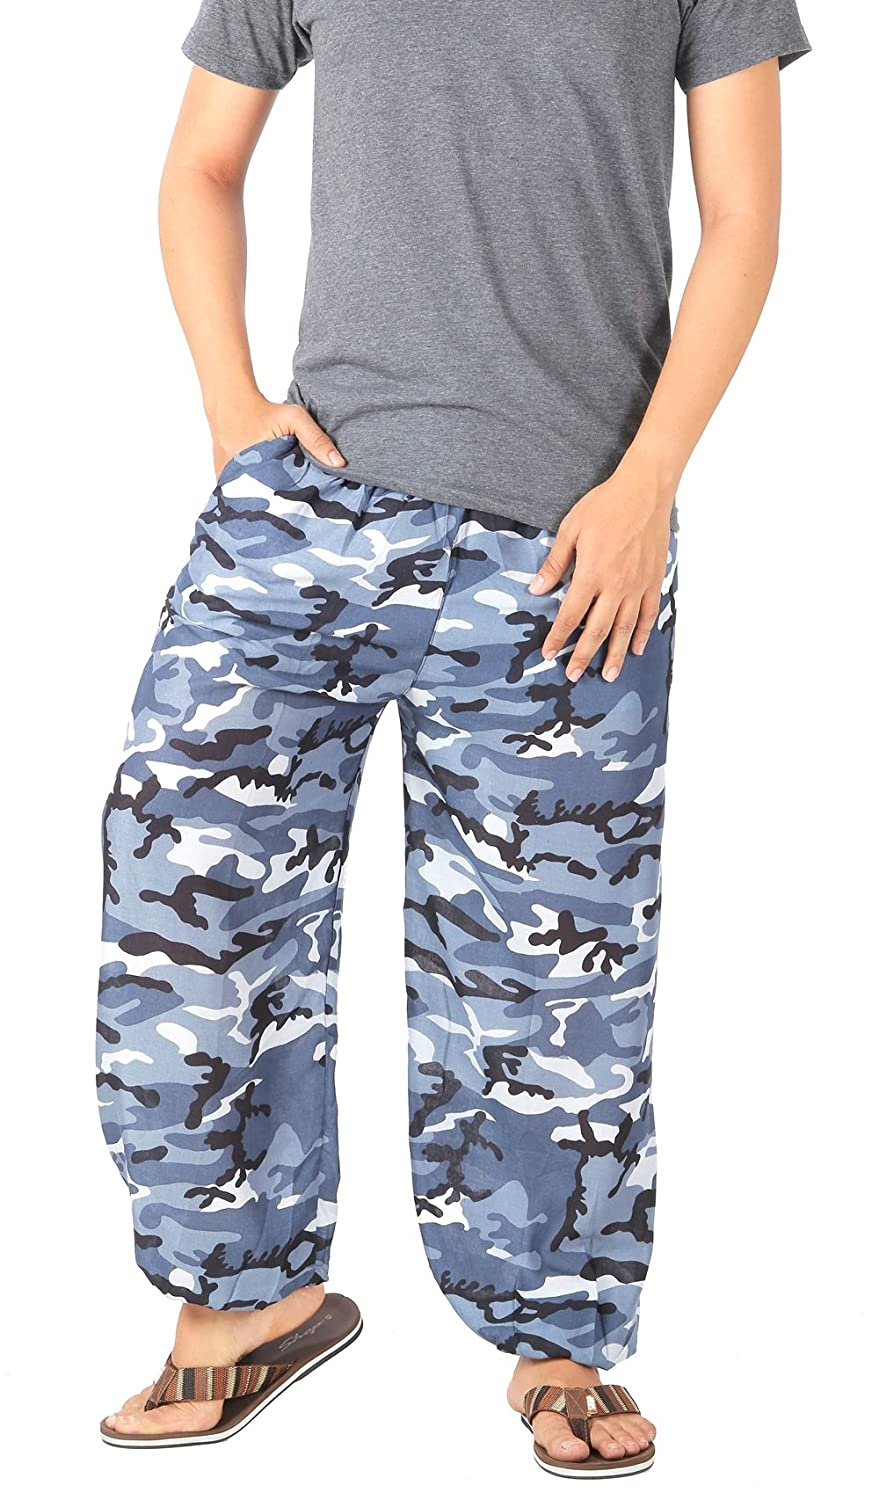 CandyHusky's Women Rayon Casual Baggy Camouflage Pants